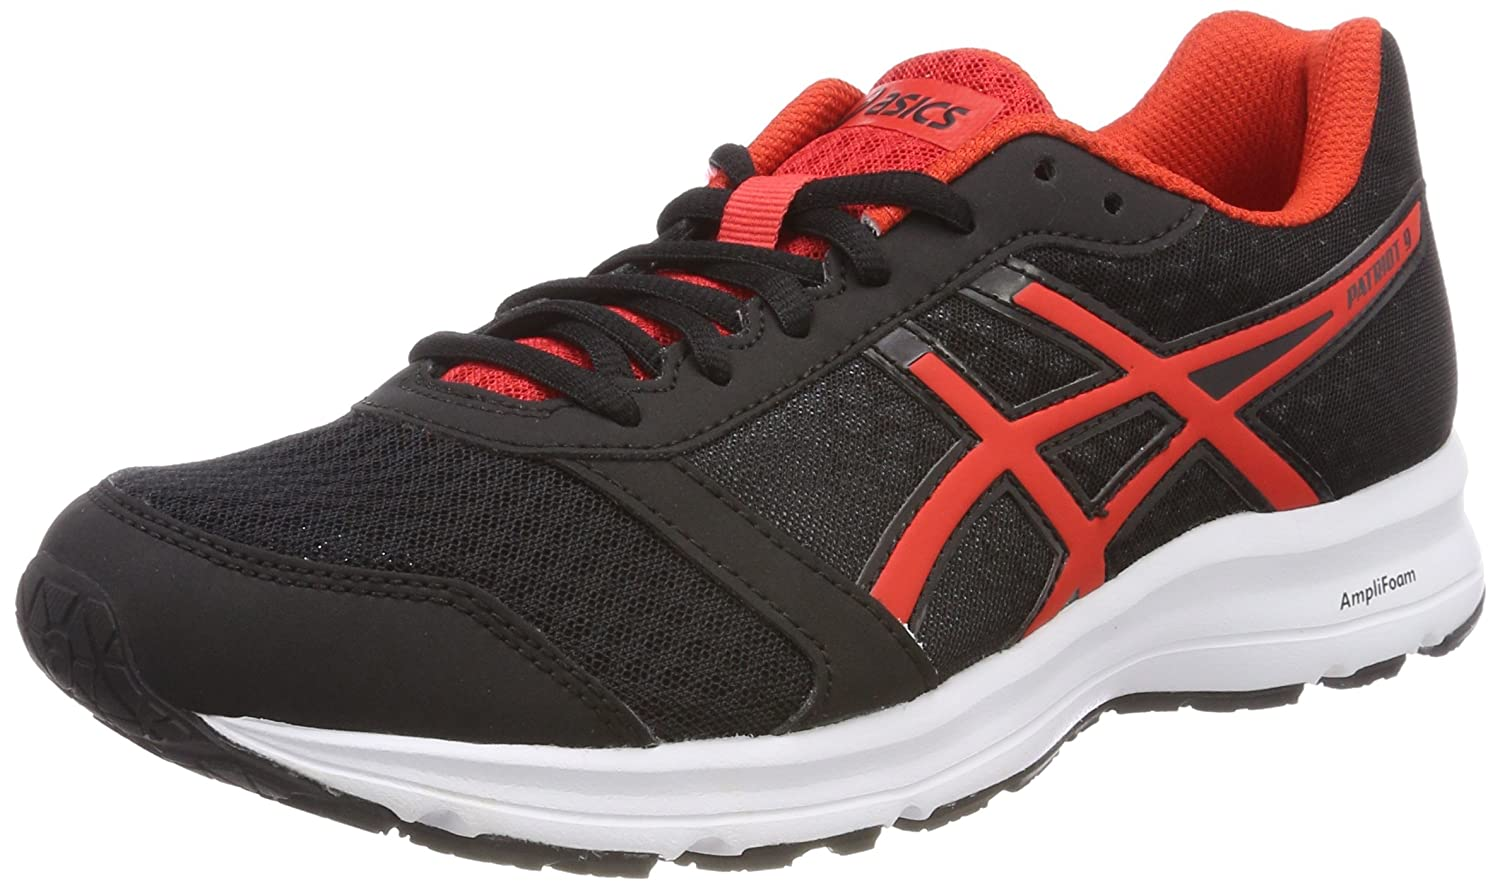 low priced 6eaab 9ed39 Asics Patriot 9, Chaussures de Running Homme T823N